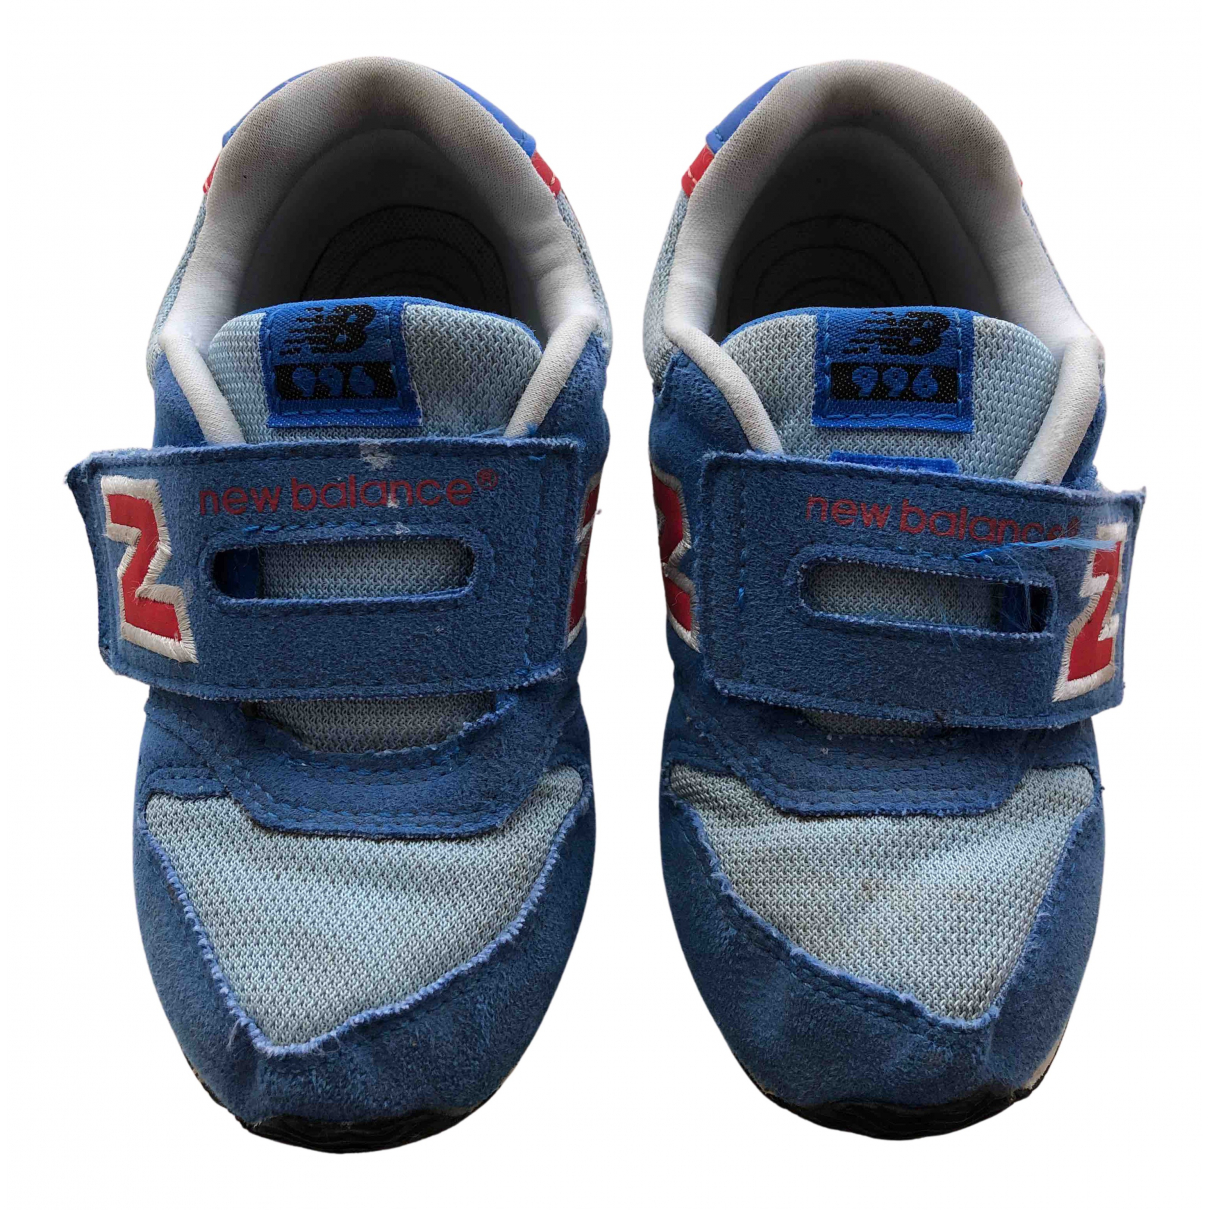 New Balance N Blue Cloth Trainers for Kids 26 FR